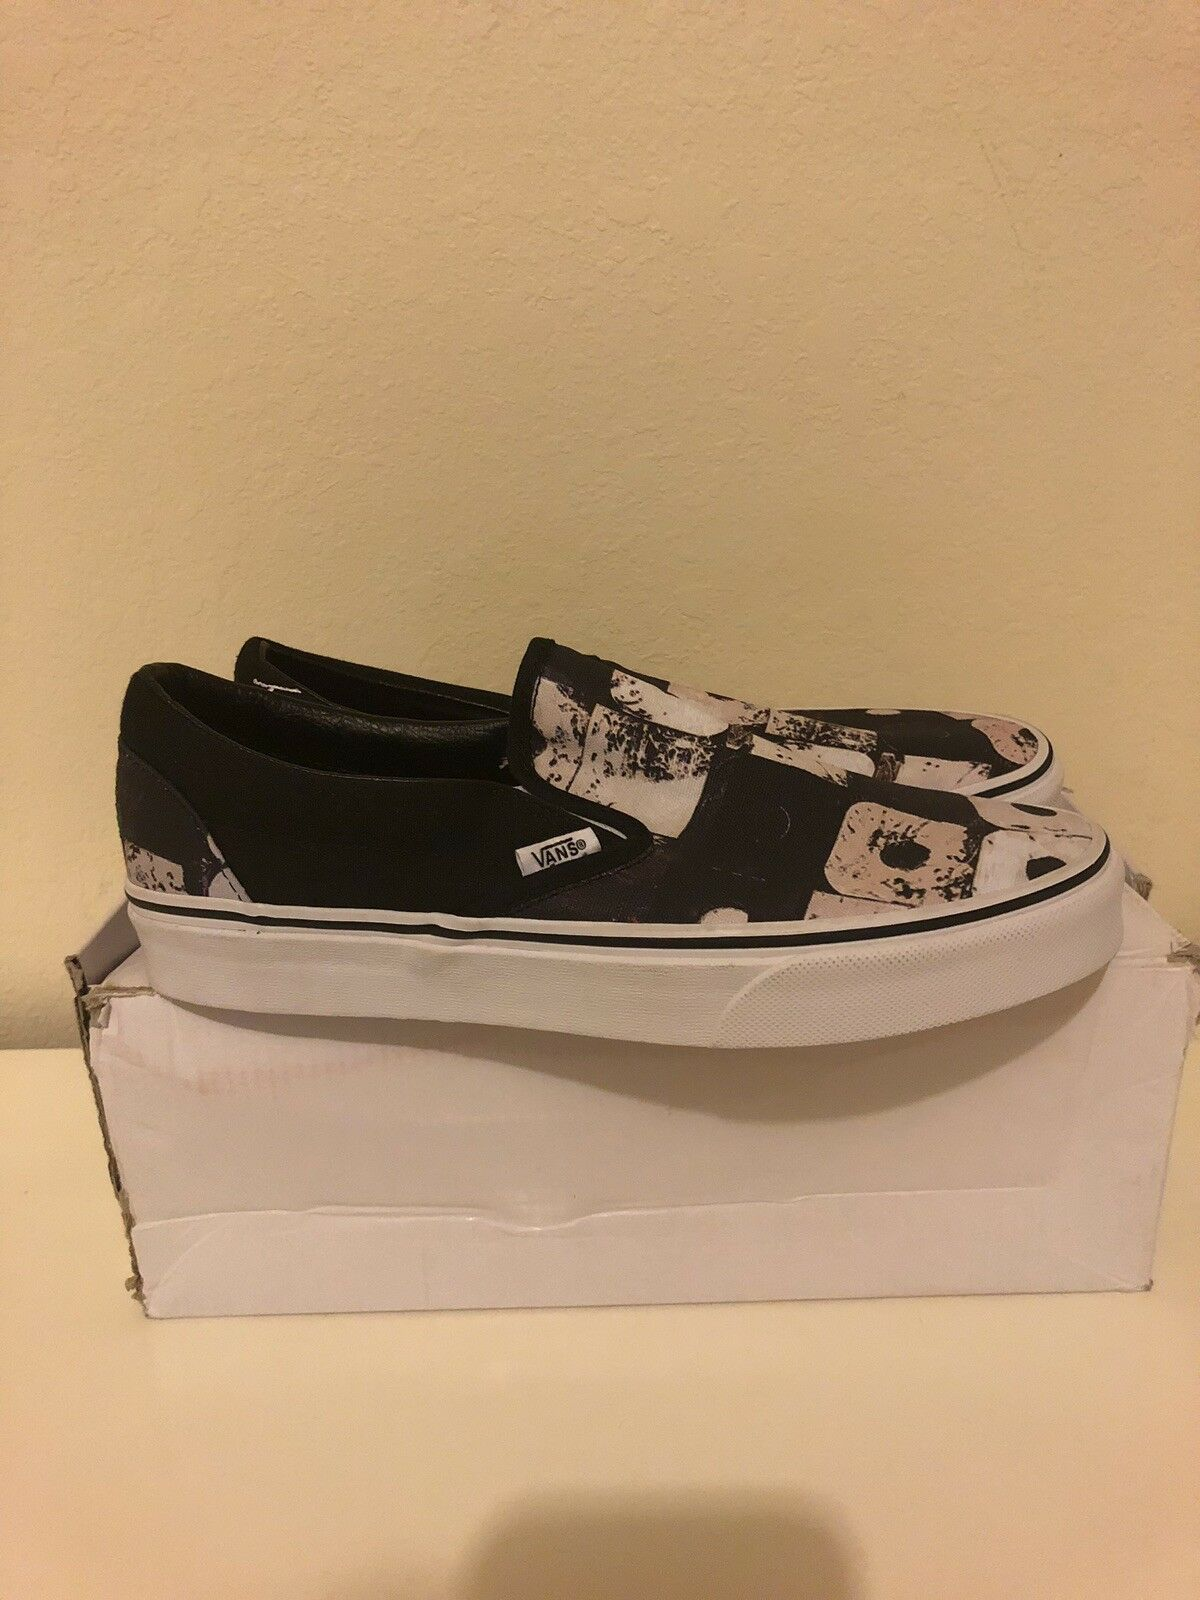 VANS x A TRIBE CALLED QUEST Mens shoes shoes shoes (NEW) Classic Slip-On ATCQ Size 8 9e4069